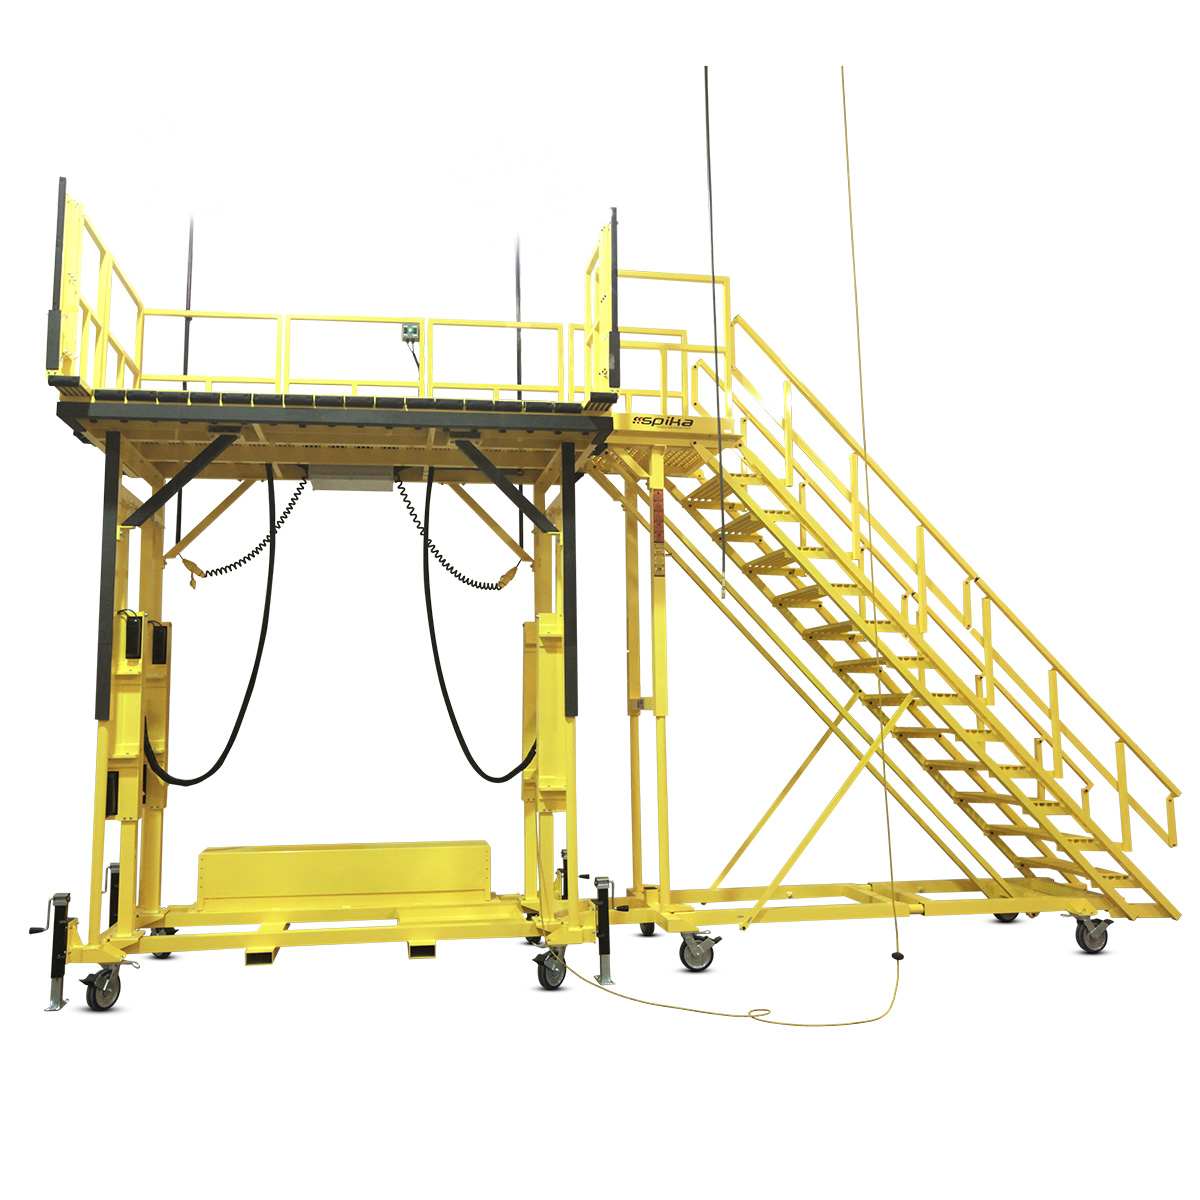 Agusta Westland AW-139 – Daily Maintenance - Rust-resistant, UV protected powder coating in custom colors for OSHA compliant portable, aluminum work platforms.